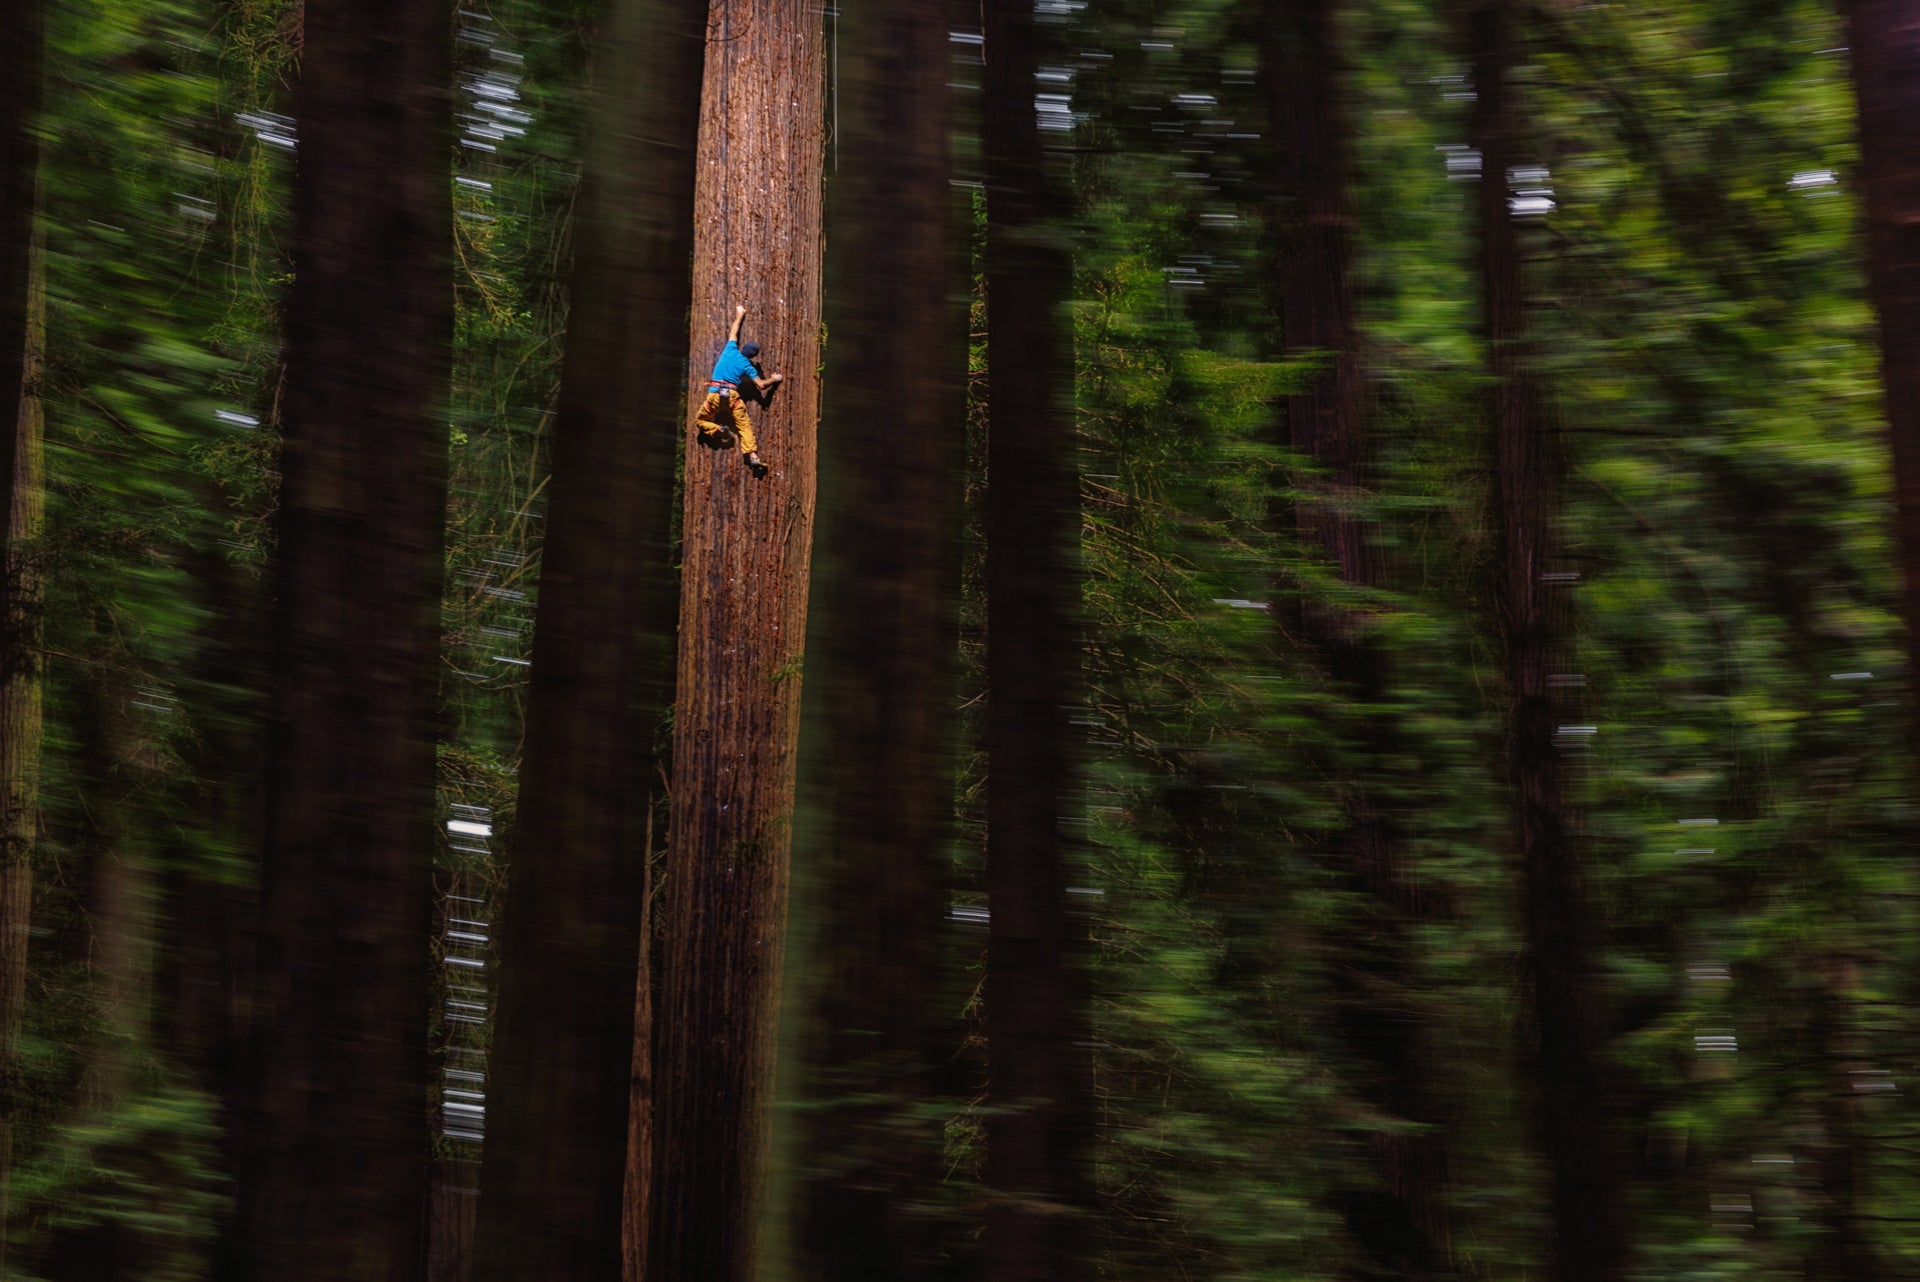 Watch This Guy Free Climb A Giant Redwood